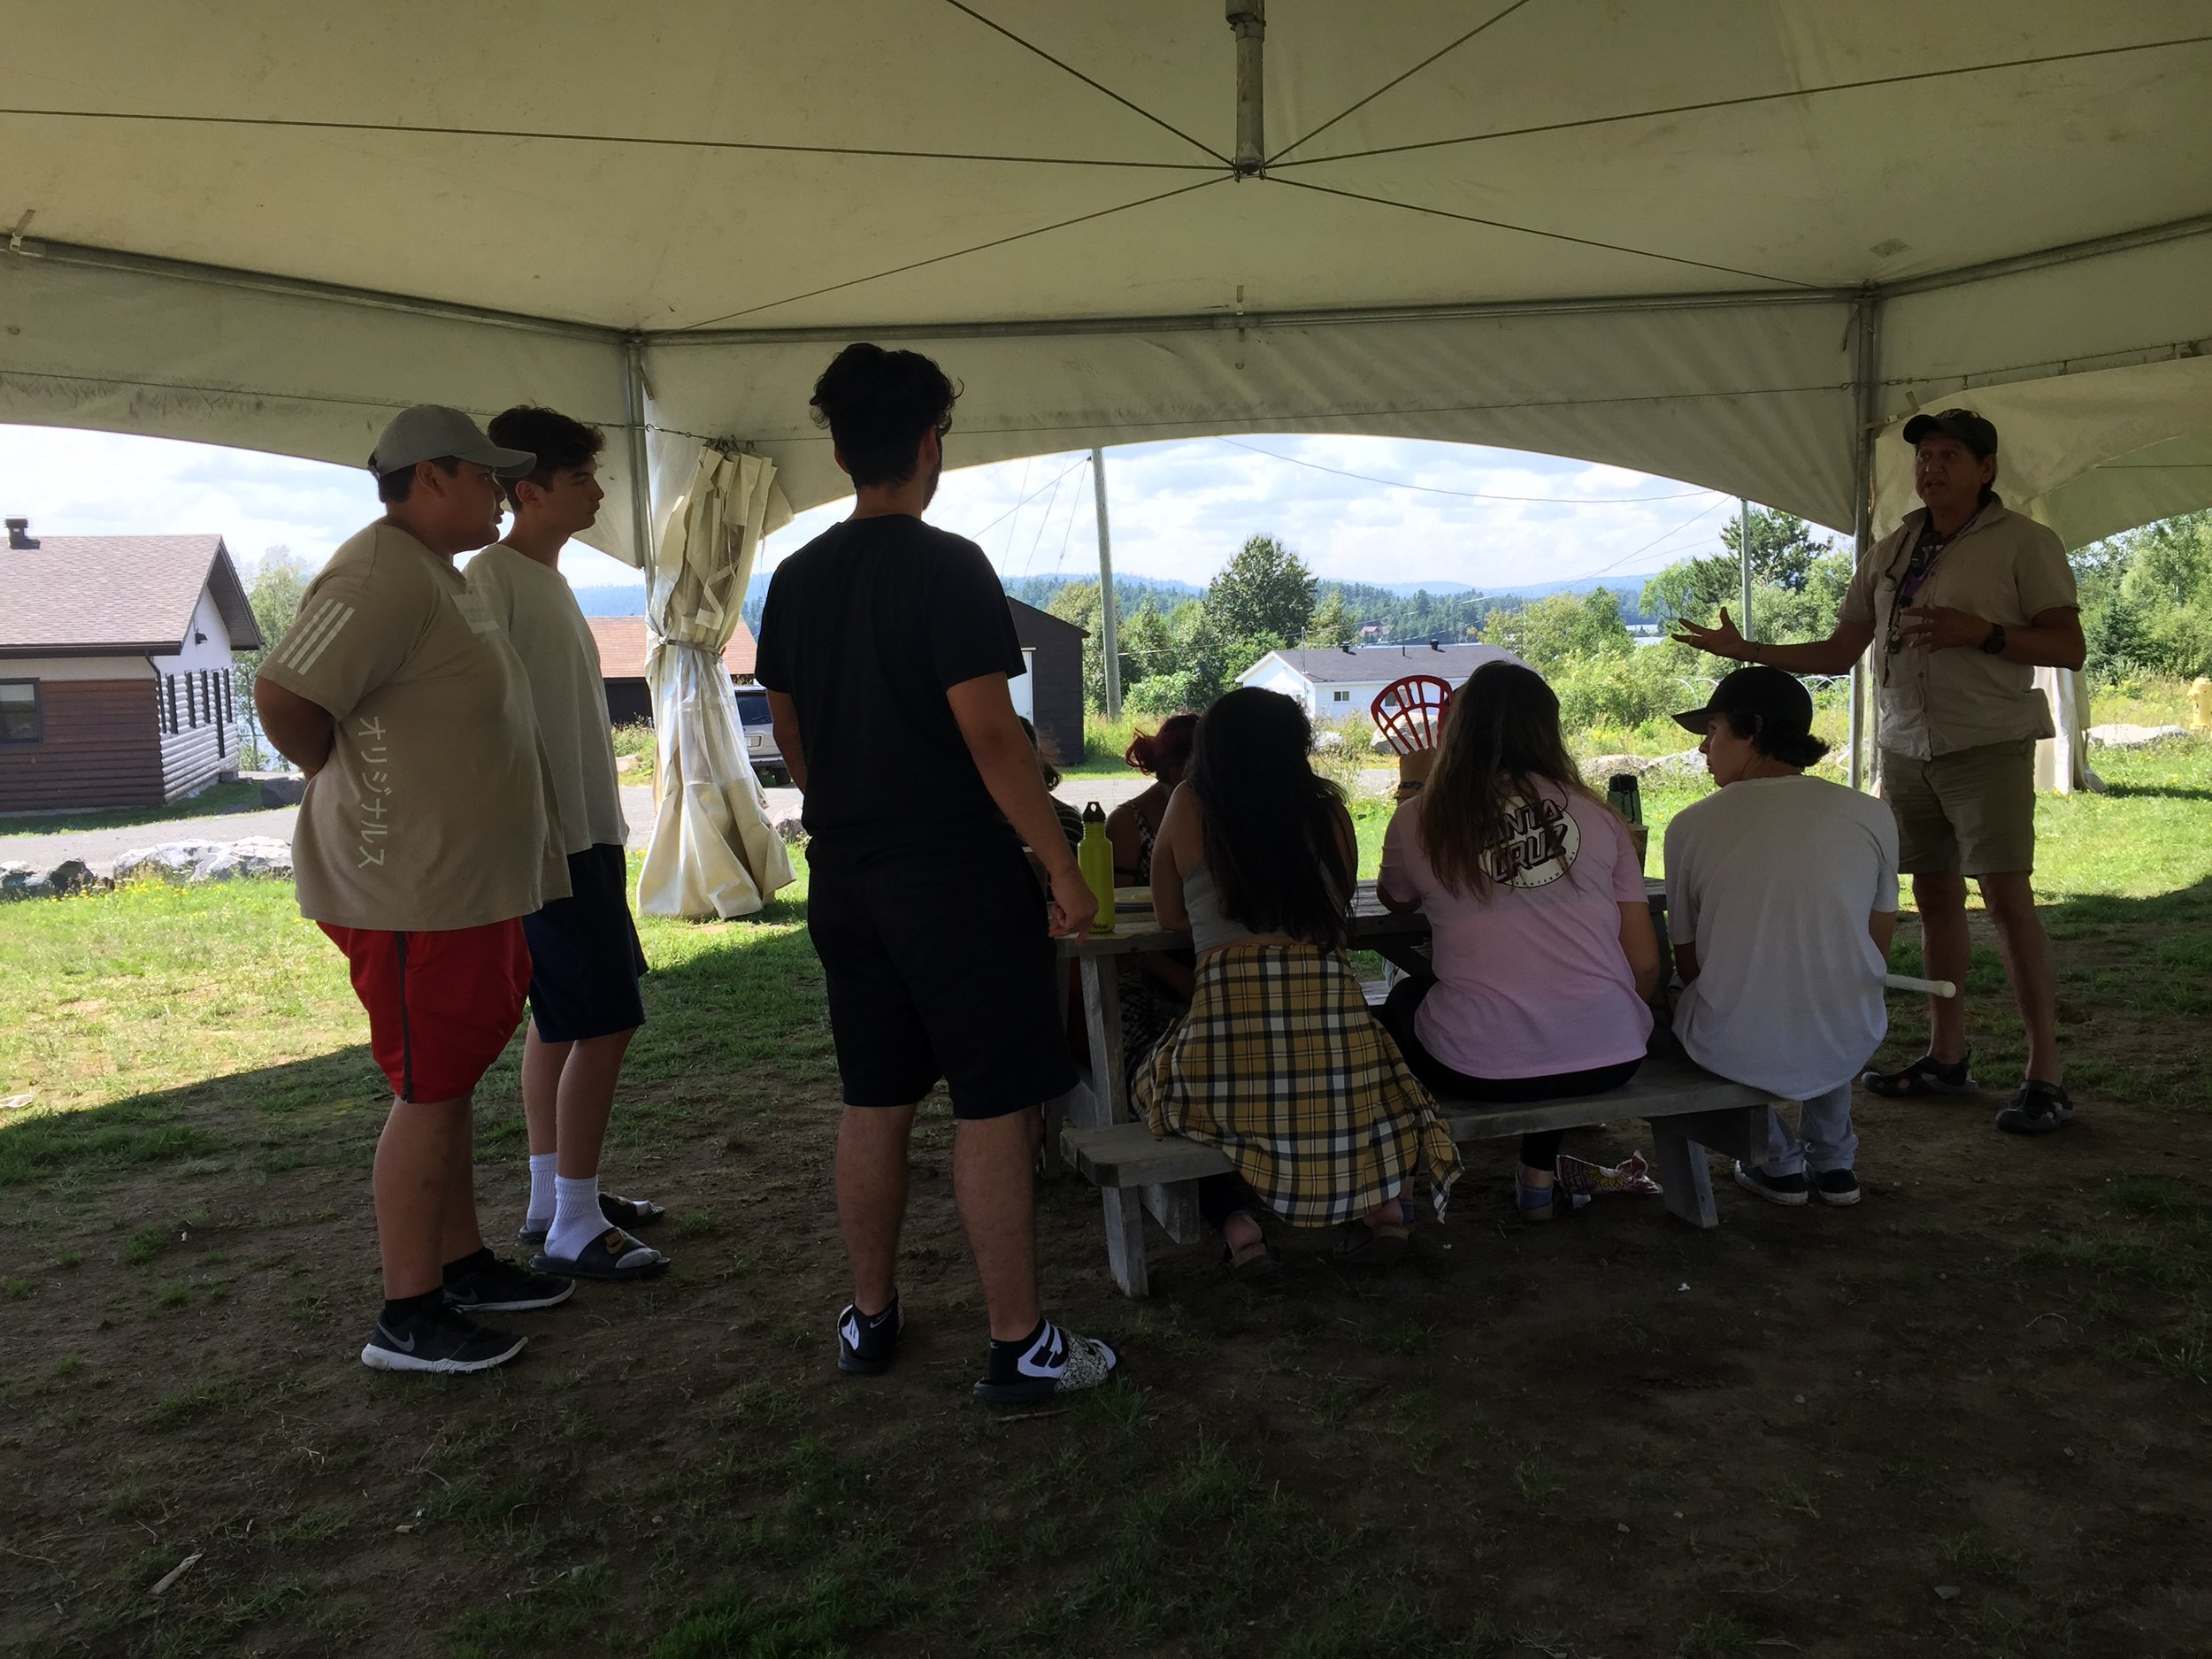 A meeting outside with Ray to discuss the canoe trip that happens after the film workshop!